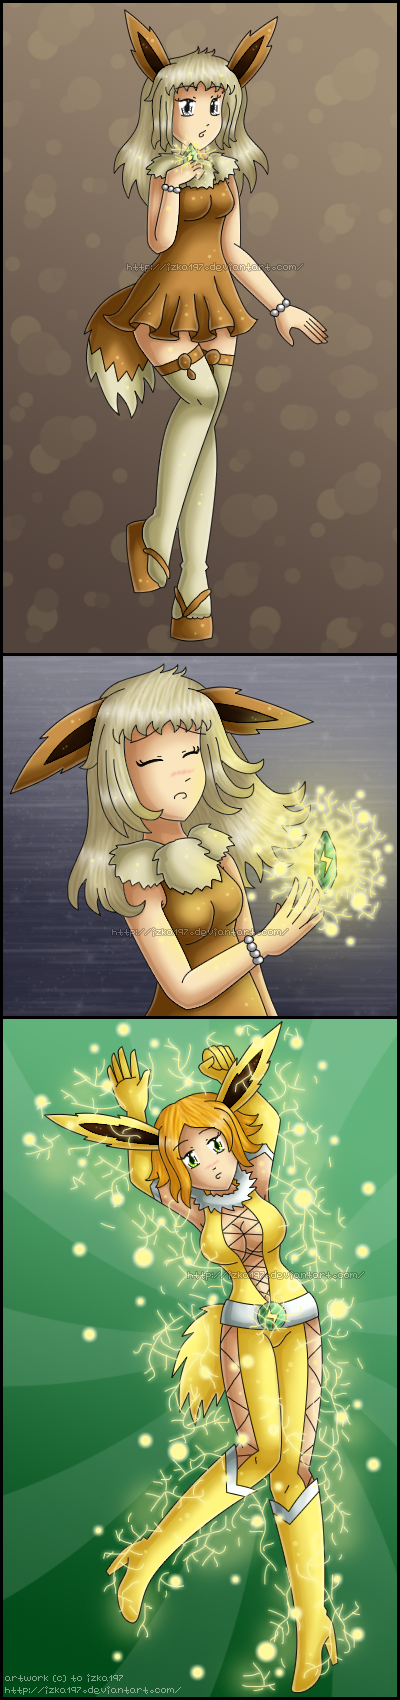 [Commission] Eevee evolves into Jolteon by izka197